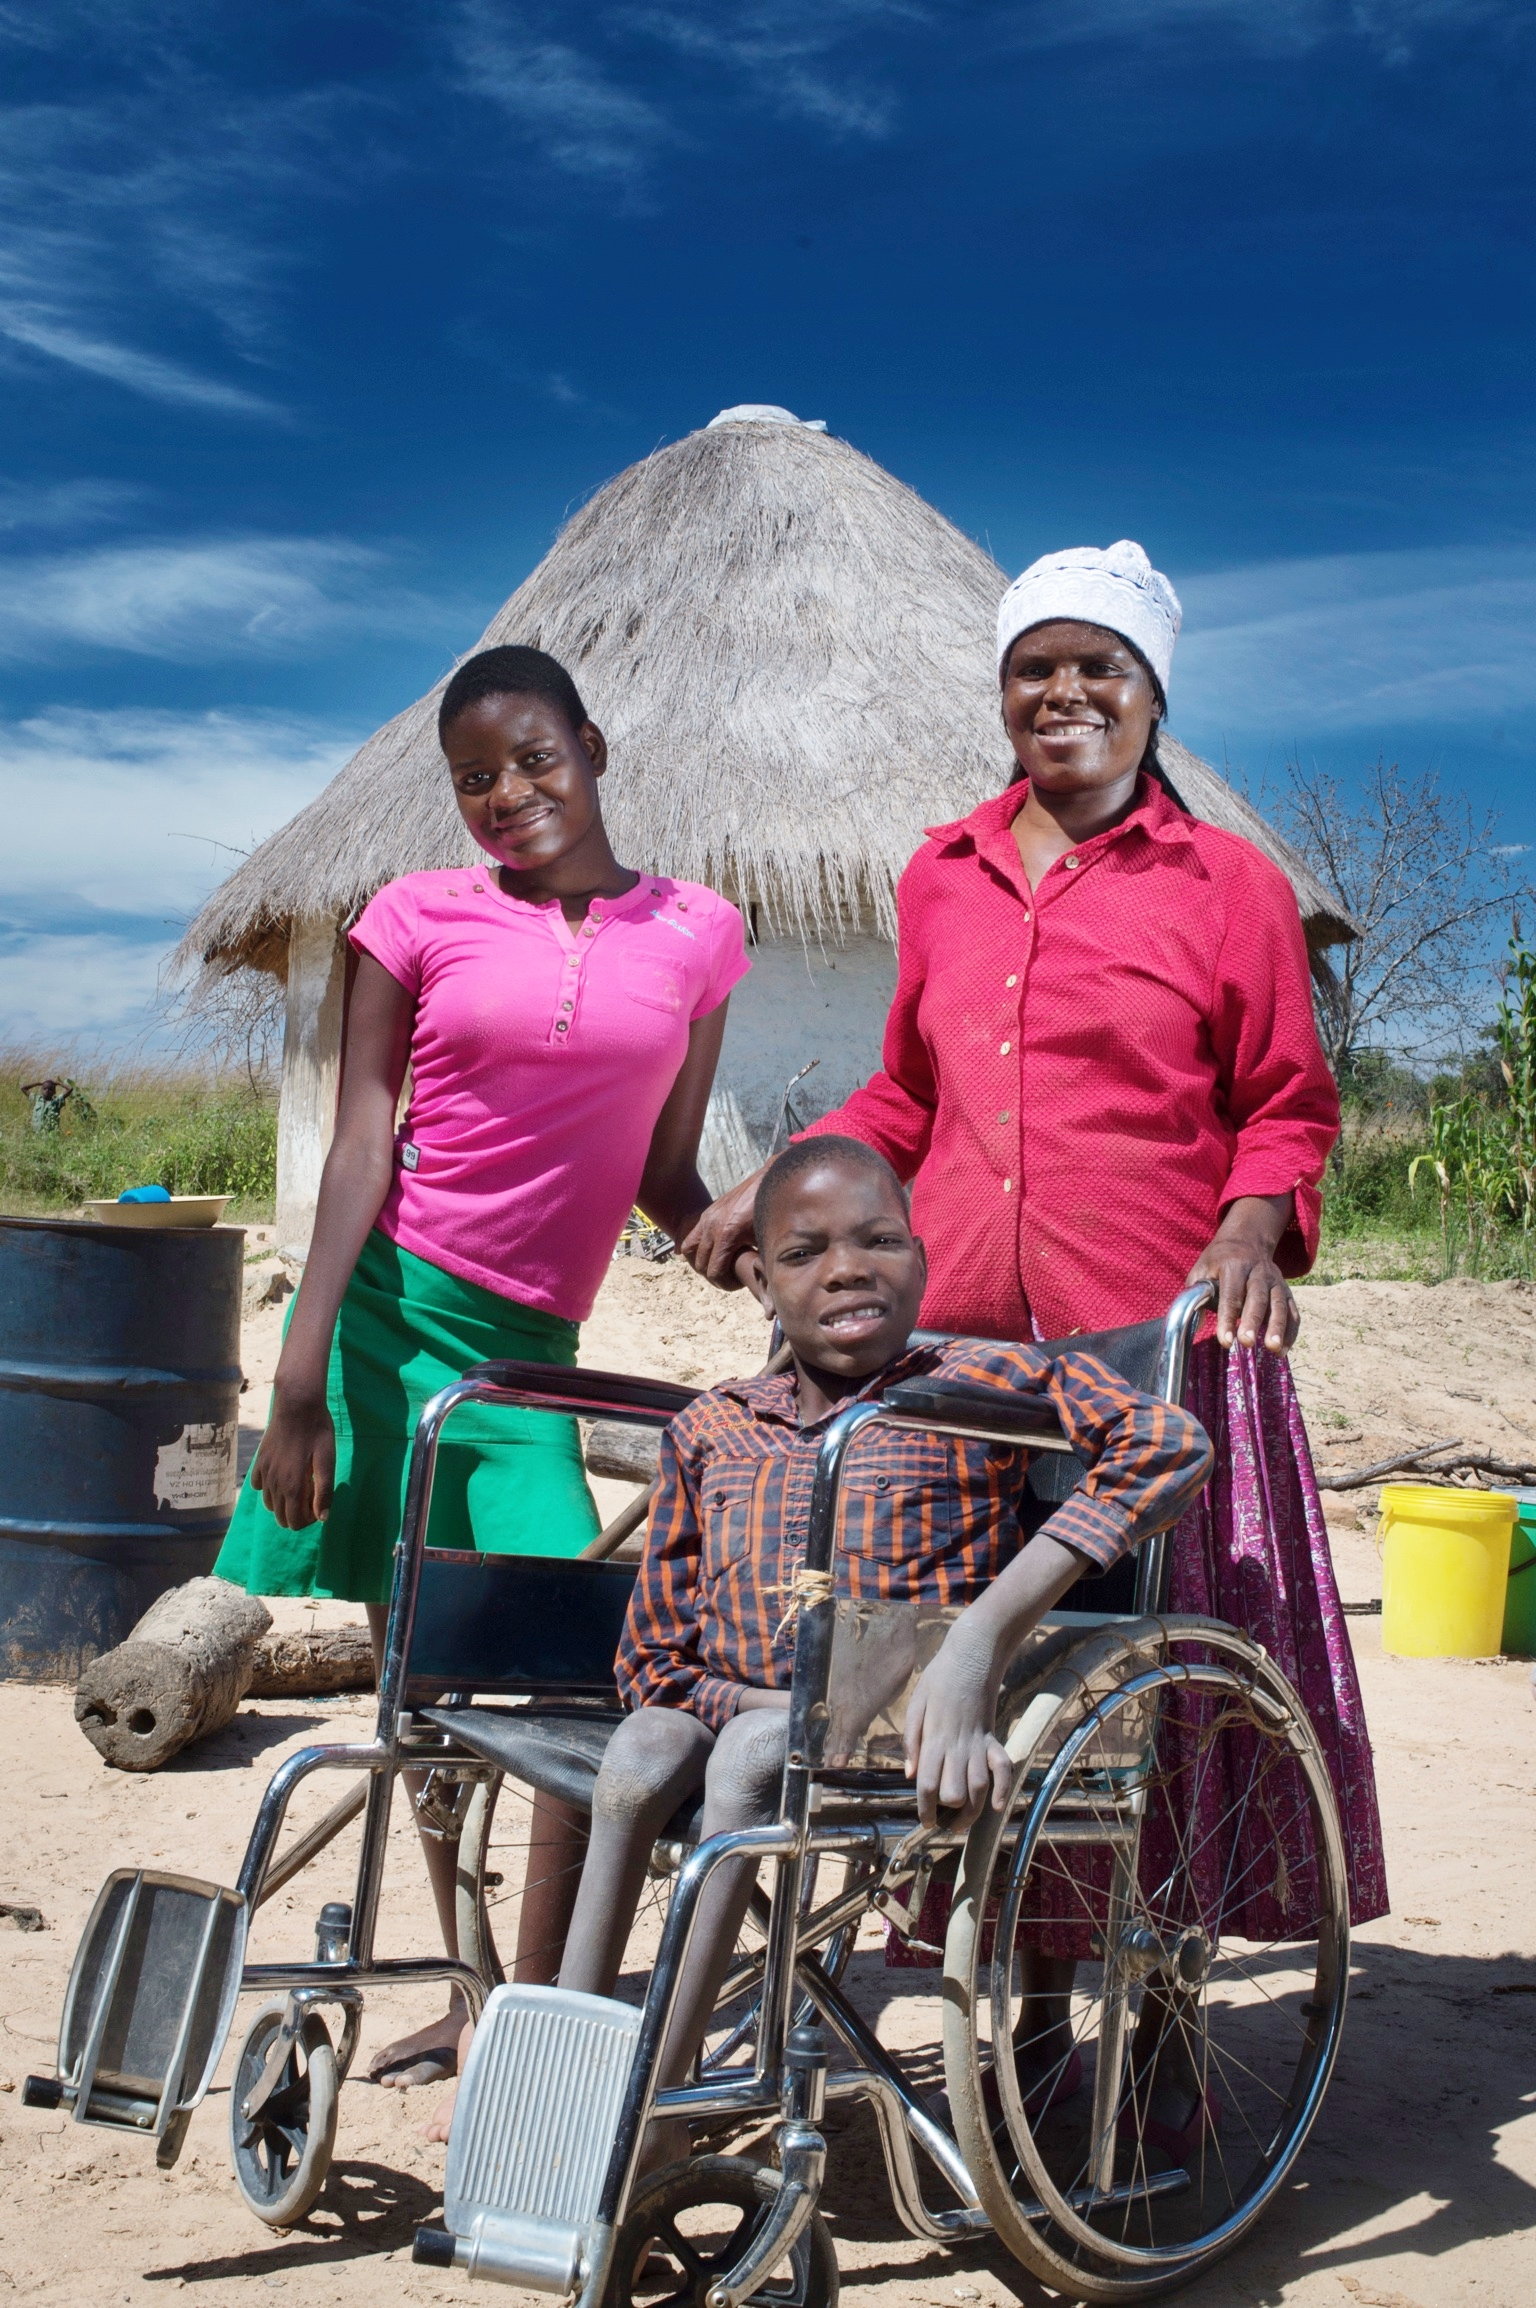 Both siblings have disabilities restricting mobility; they rarely leave their homestead. The trust supplies food and wheelchairs.